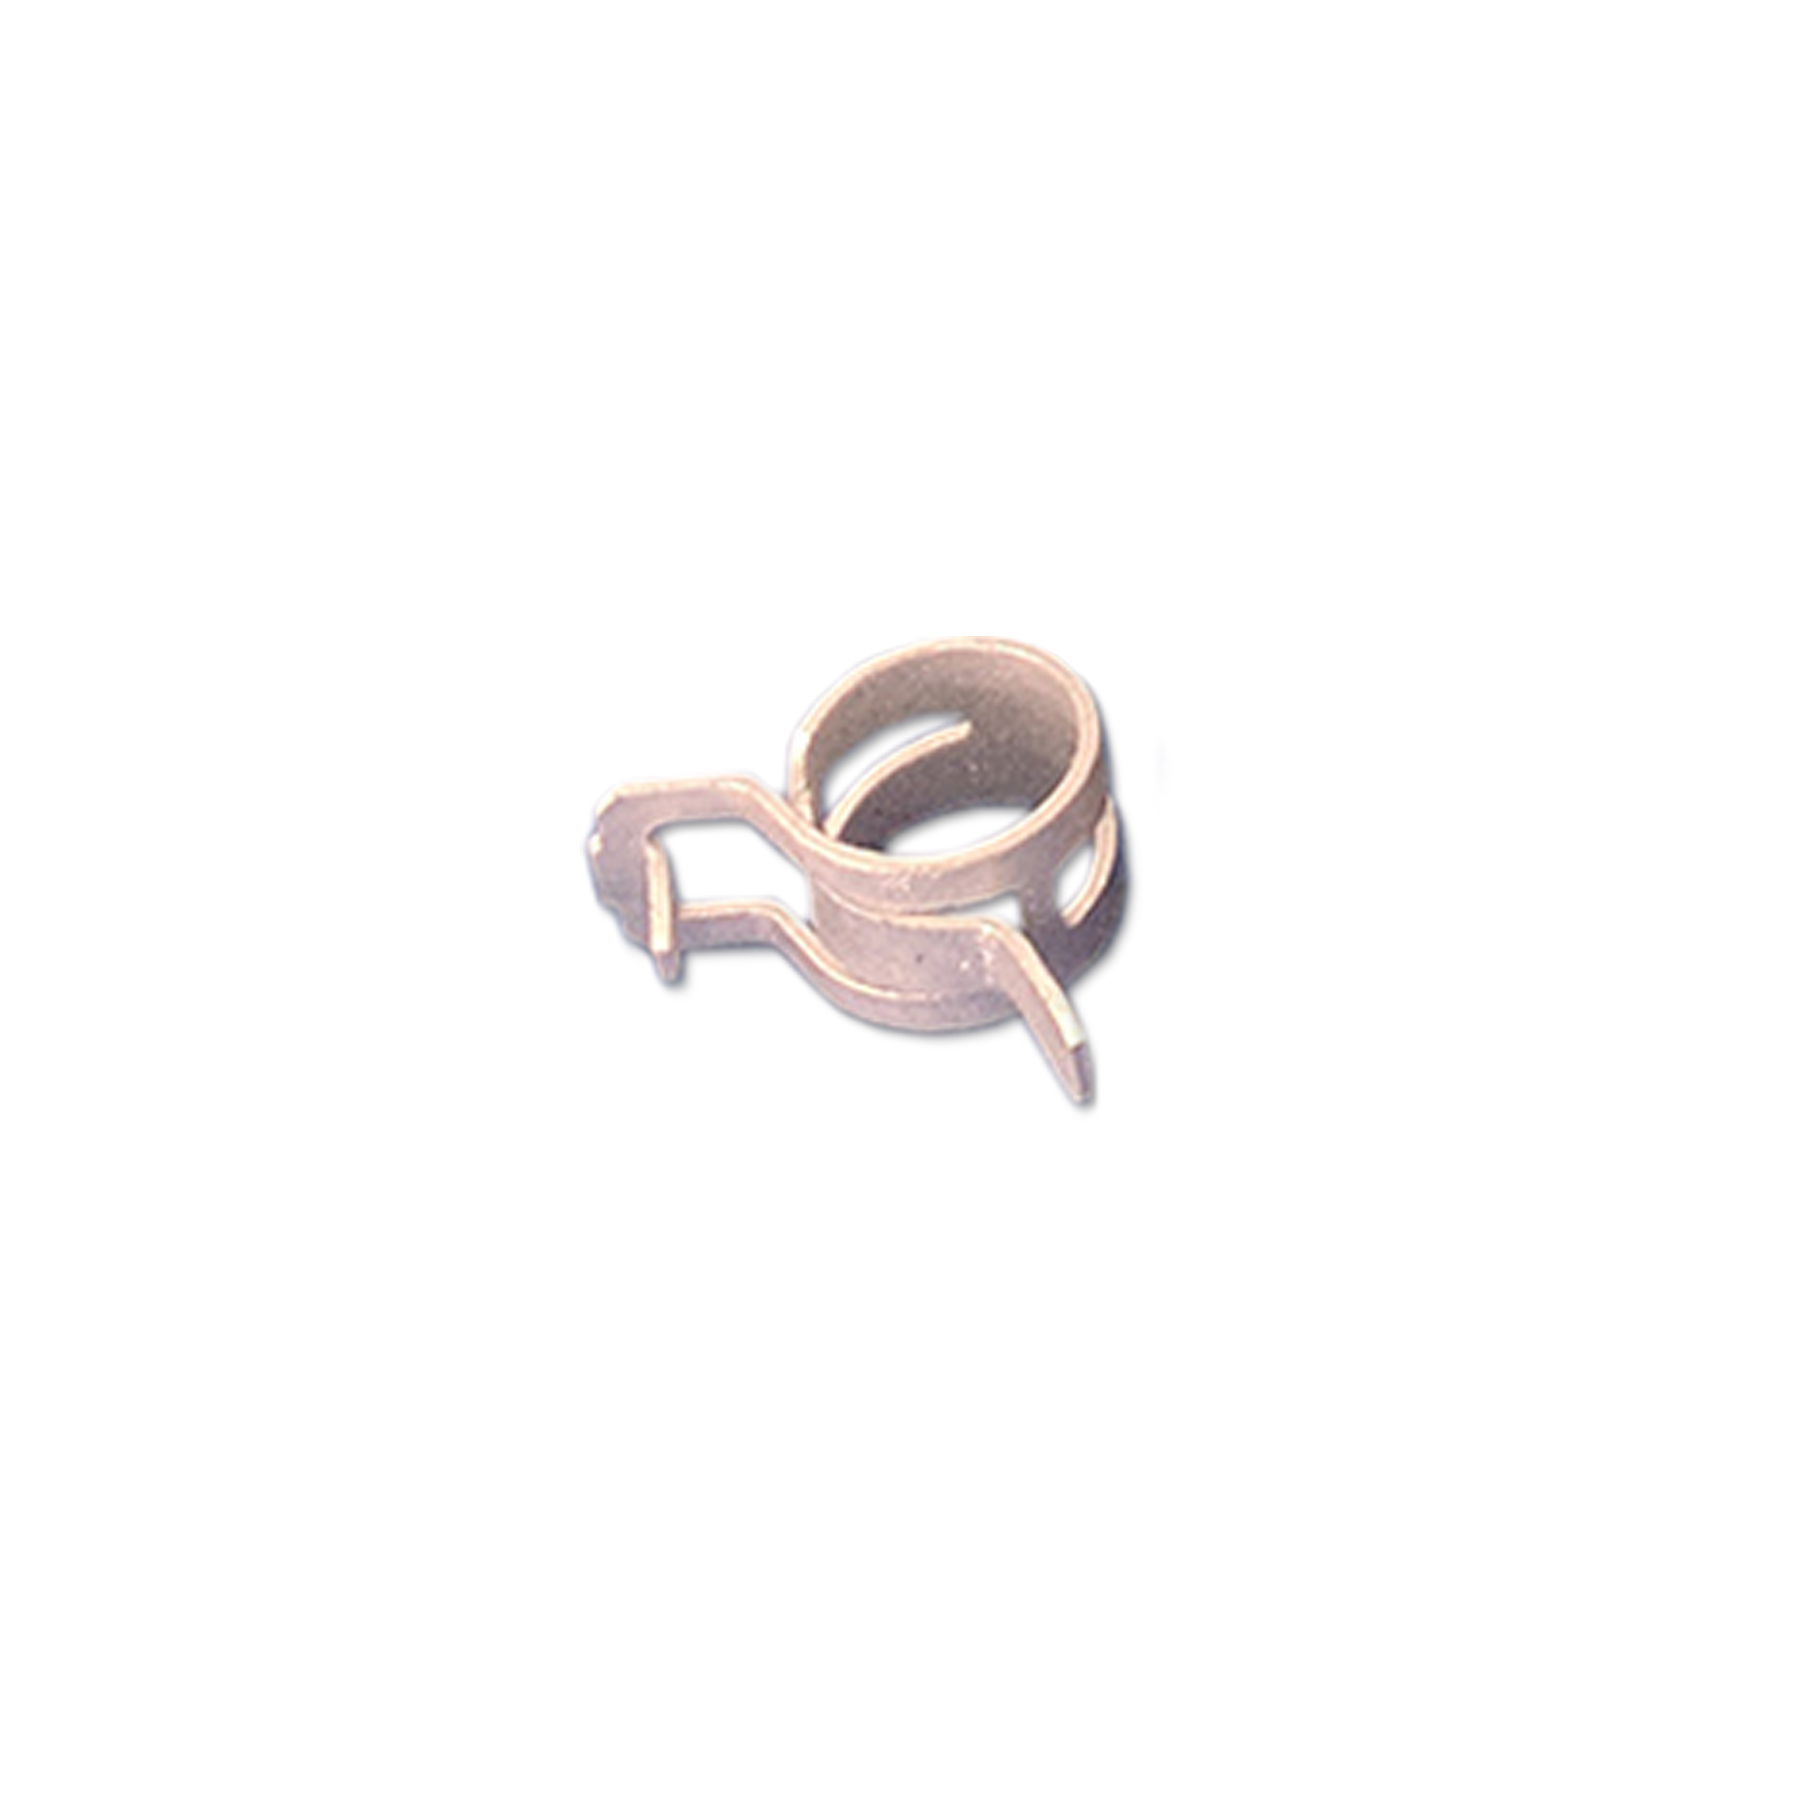 Constant Tension Hose Clamp 23/32 in.